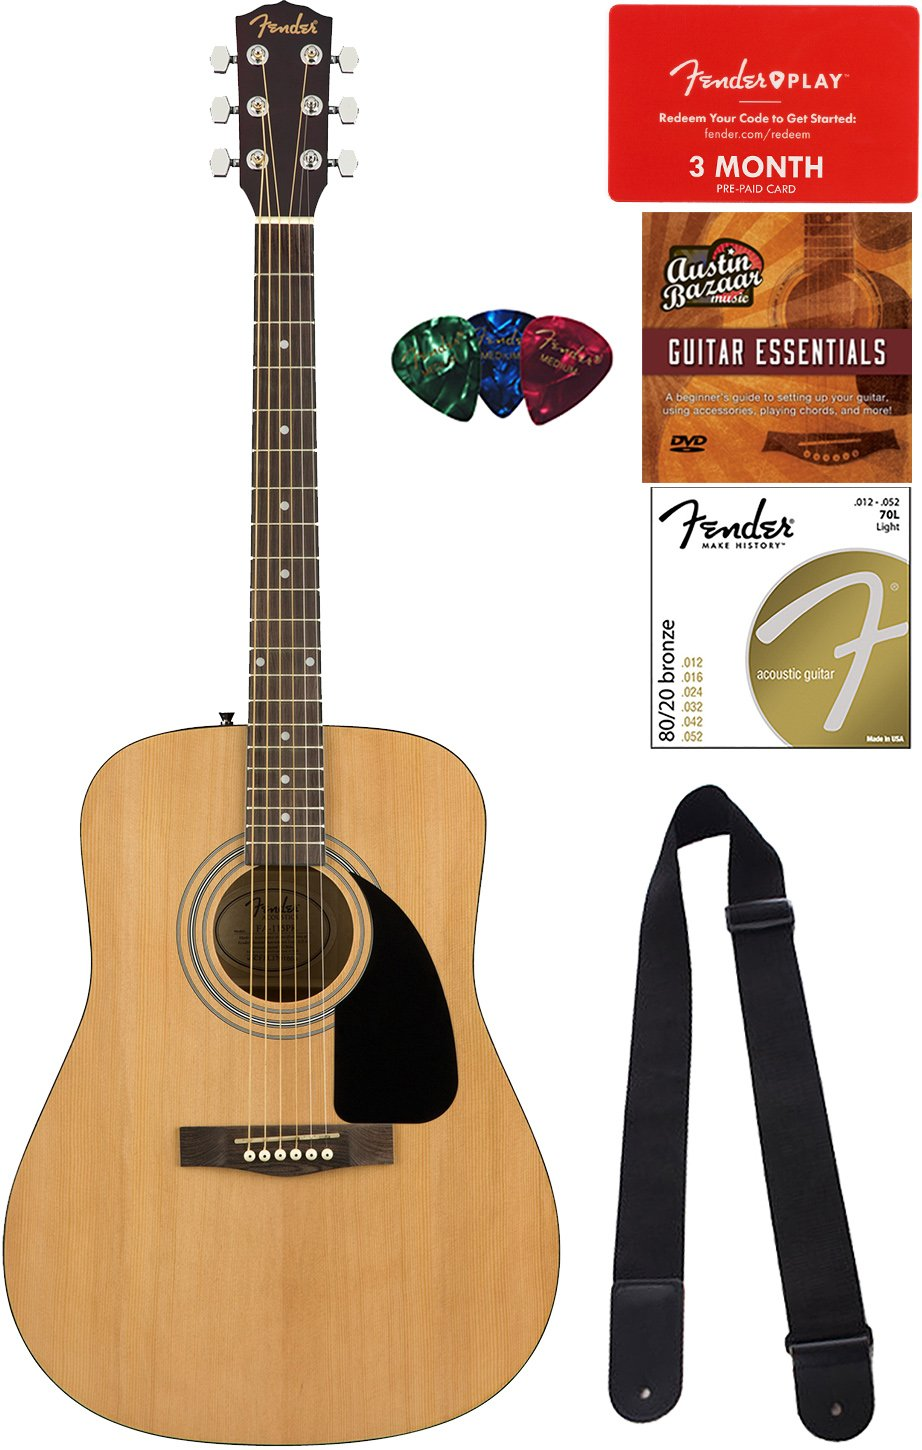 Fender FA-115 Dreadnought Acoustic Guitar - Natural Bundle with Fender Play Online Lessons, Strap, Strings, Picks and Austin Bazaar Instructional DVD by Fender